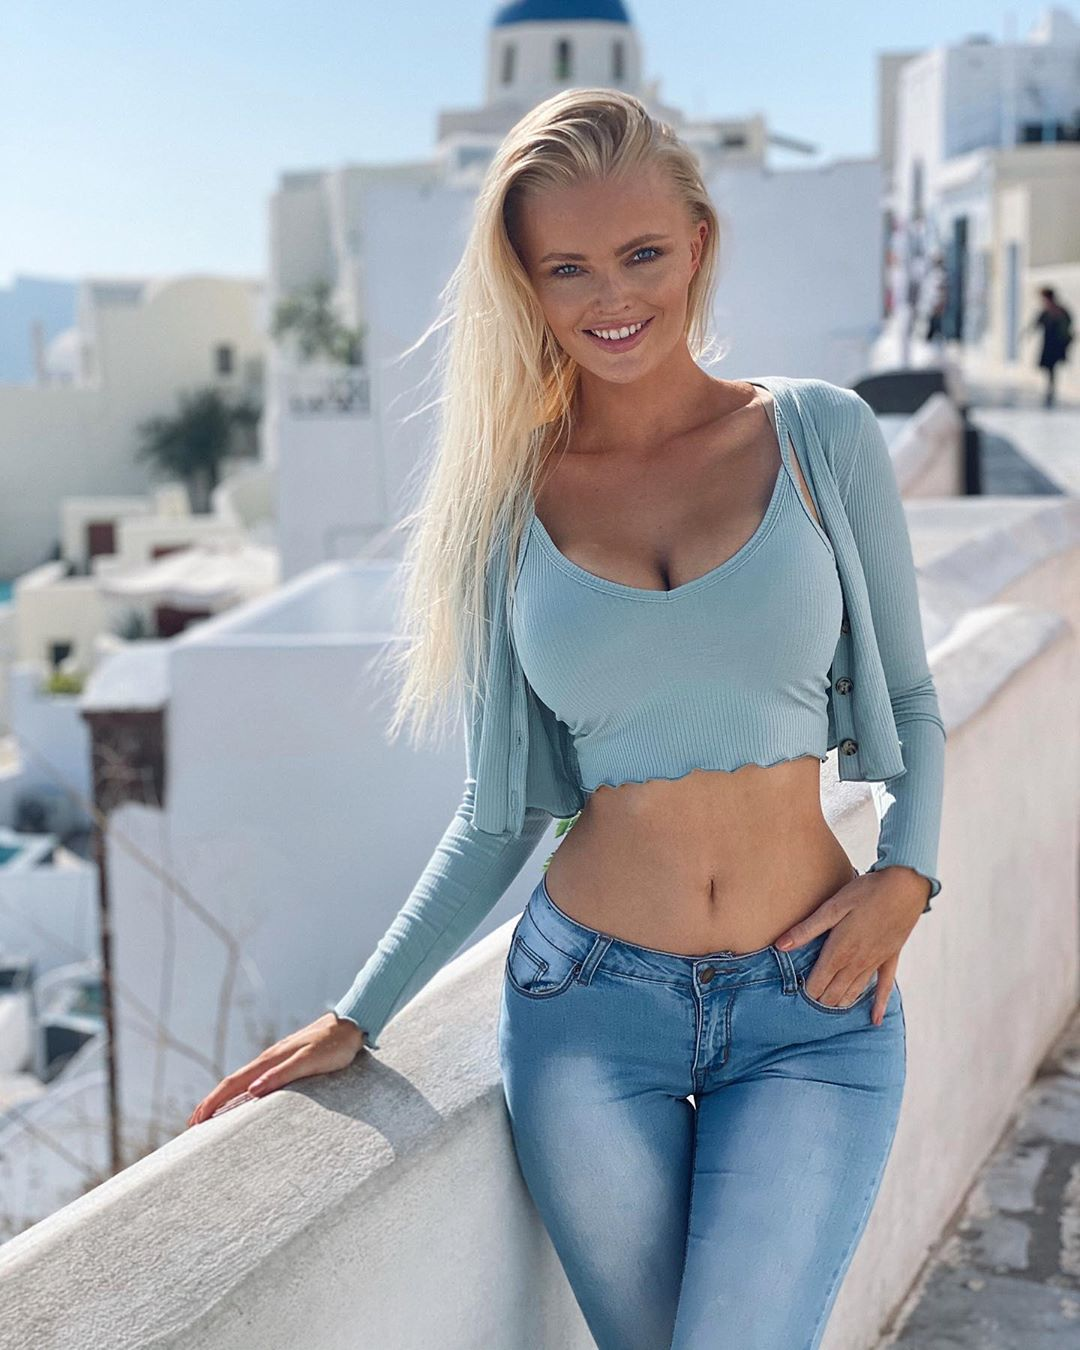 Zienna-Sonne-Williams-Wallpapers-Insta-Fit-Bio-1